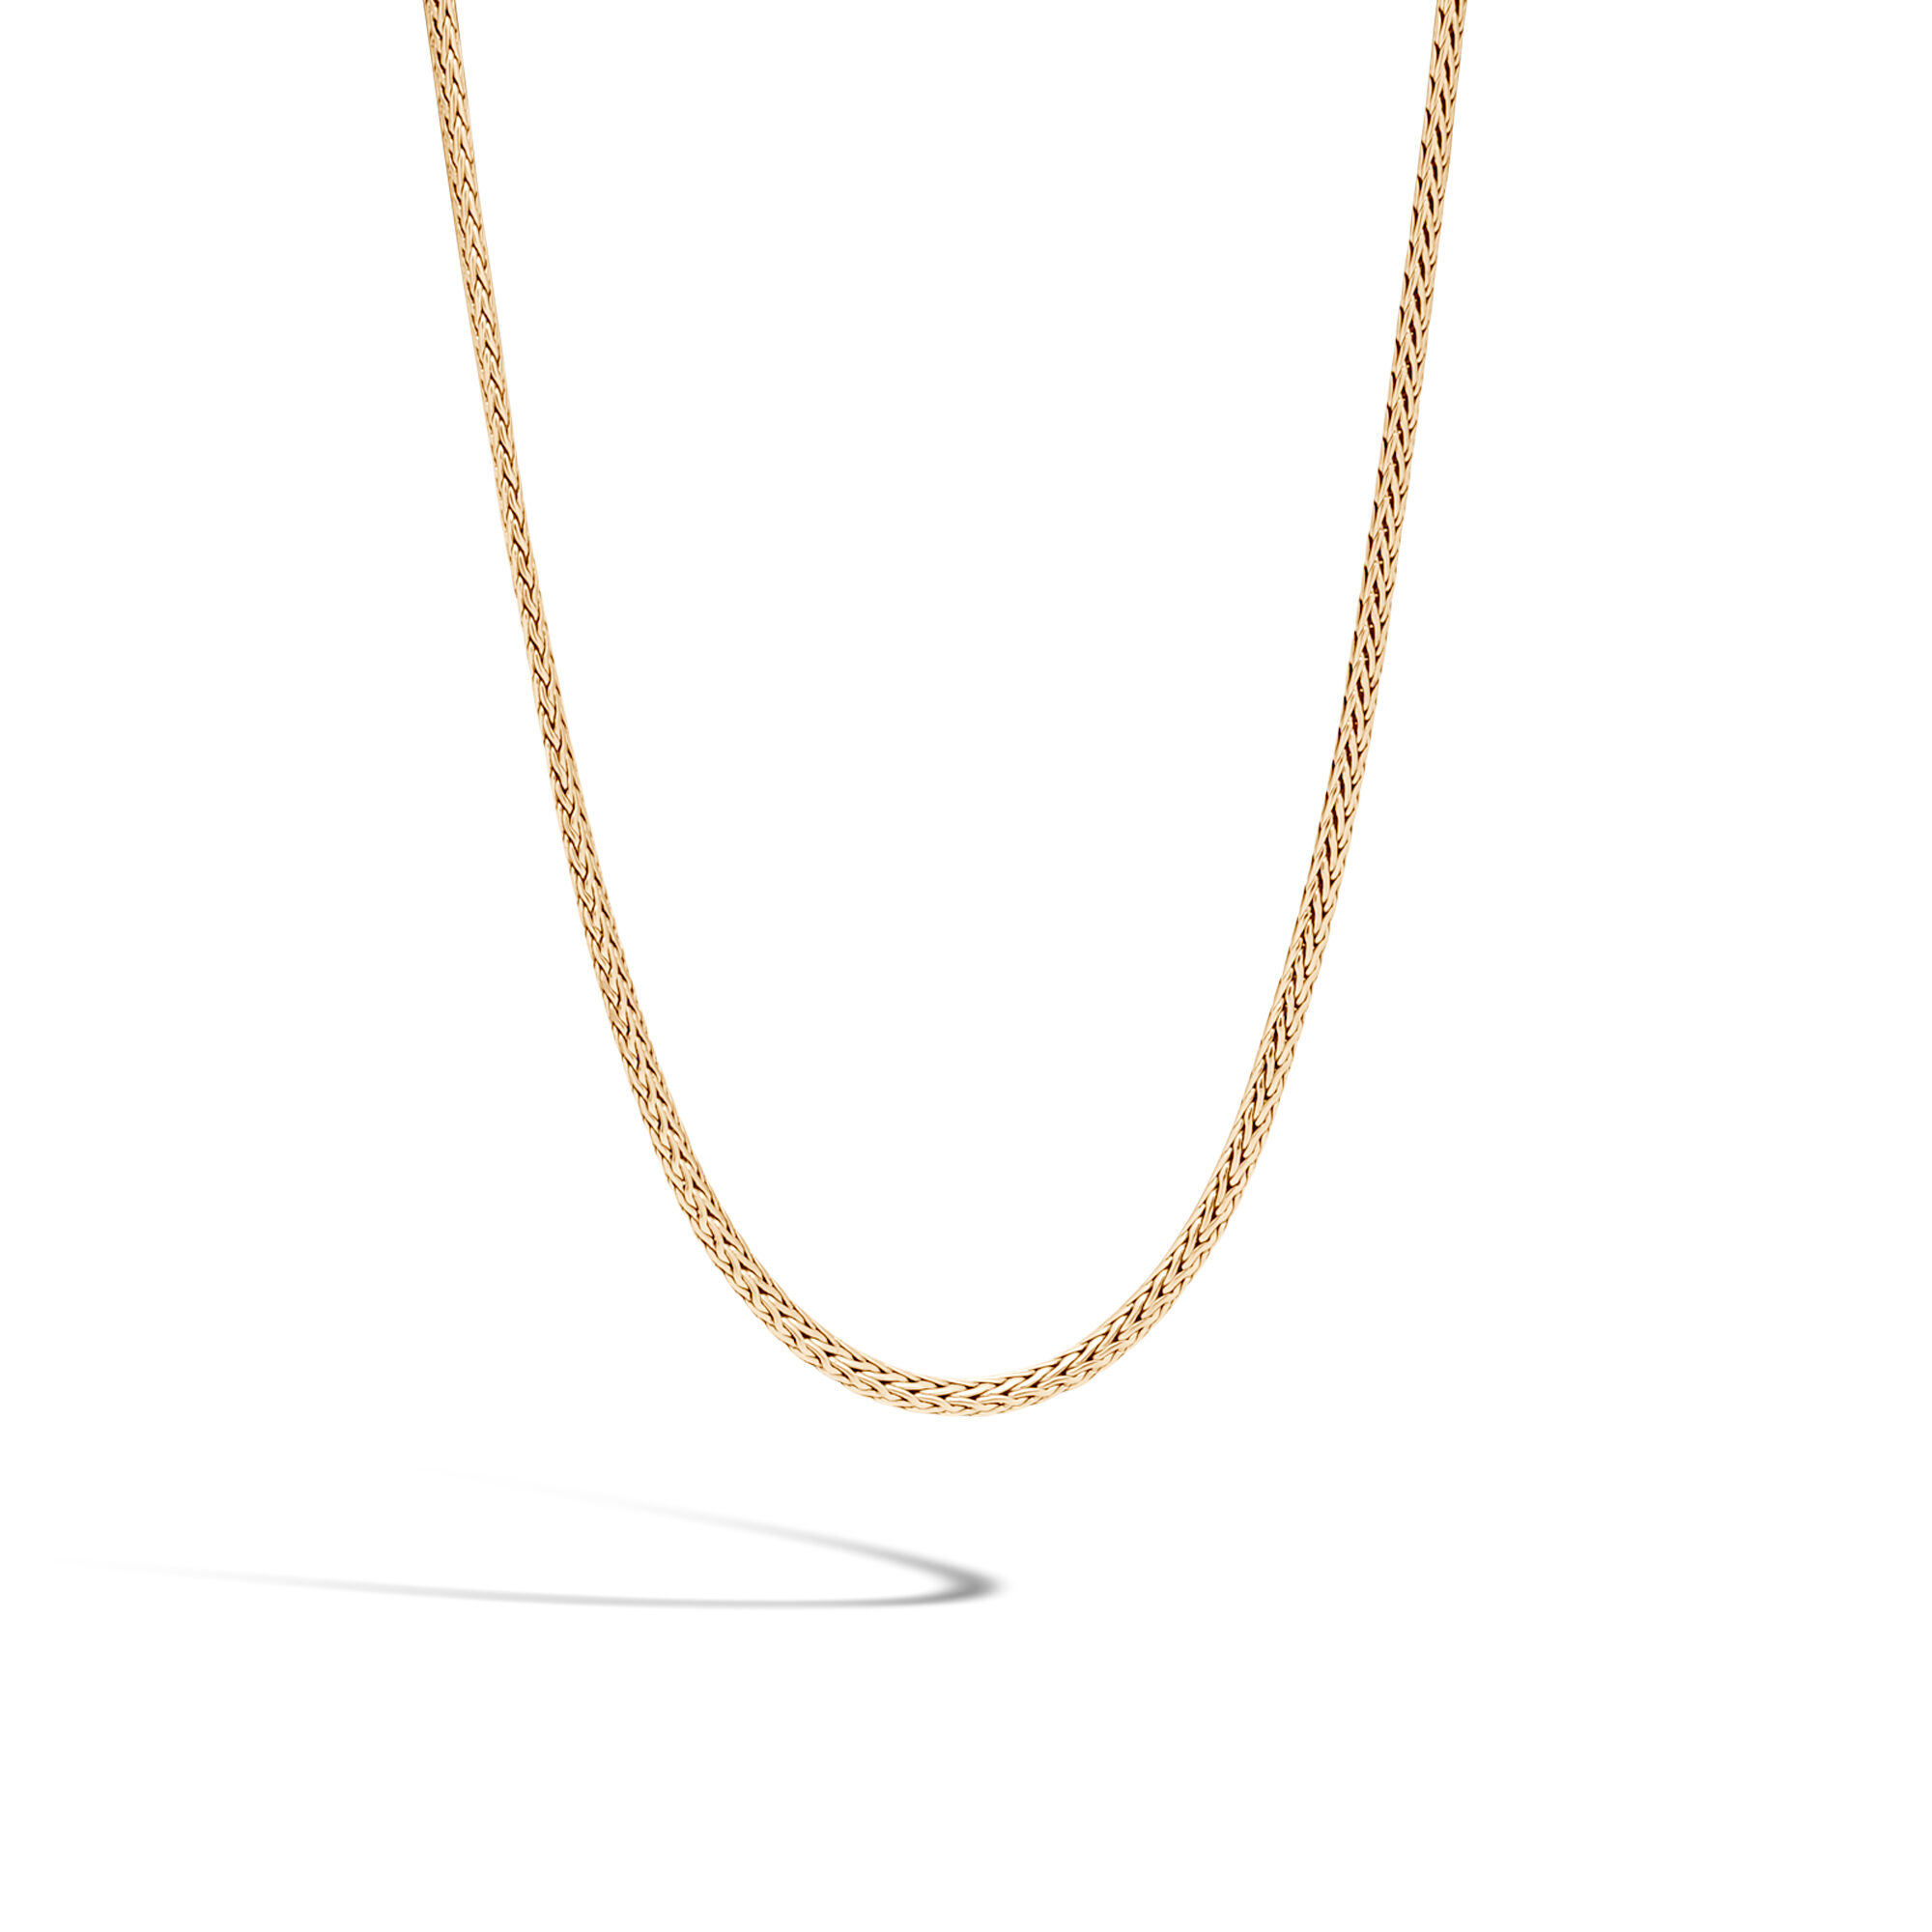 Classic Chain Necklace in 18K Gold, , large